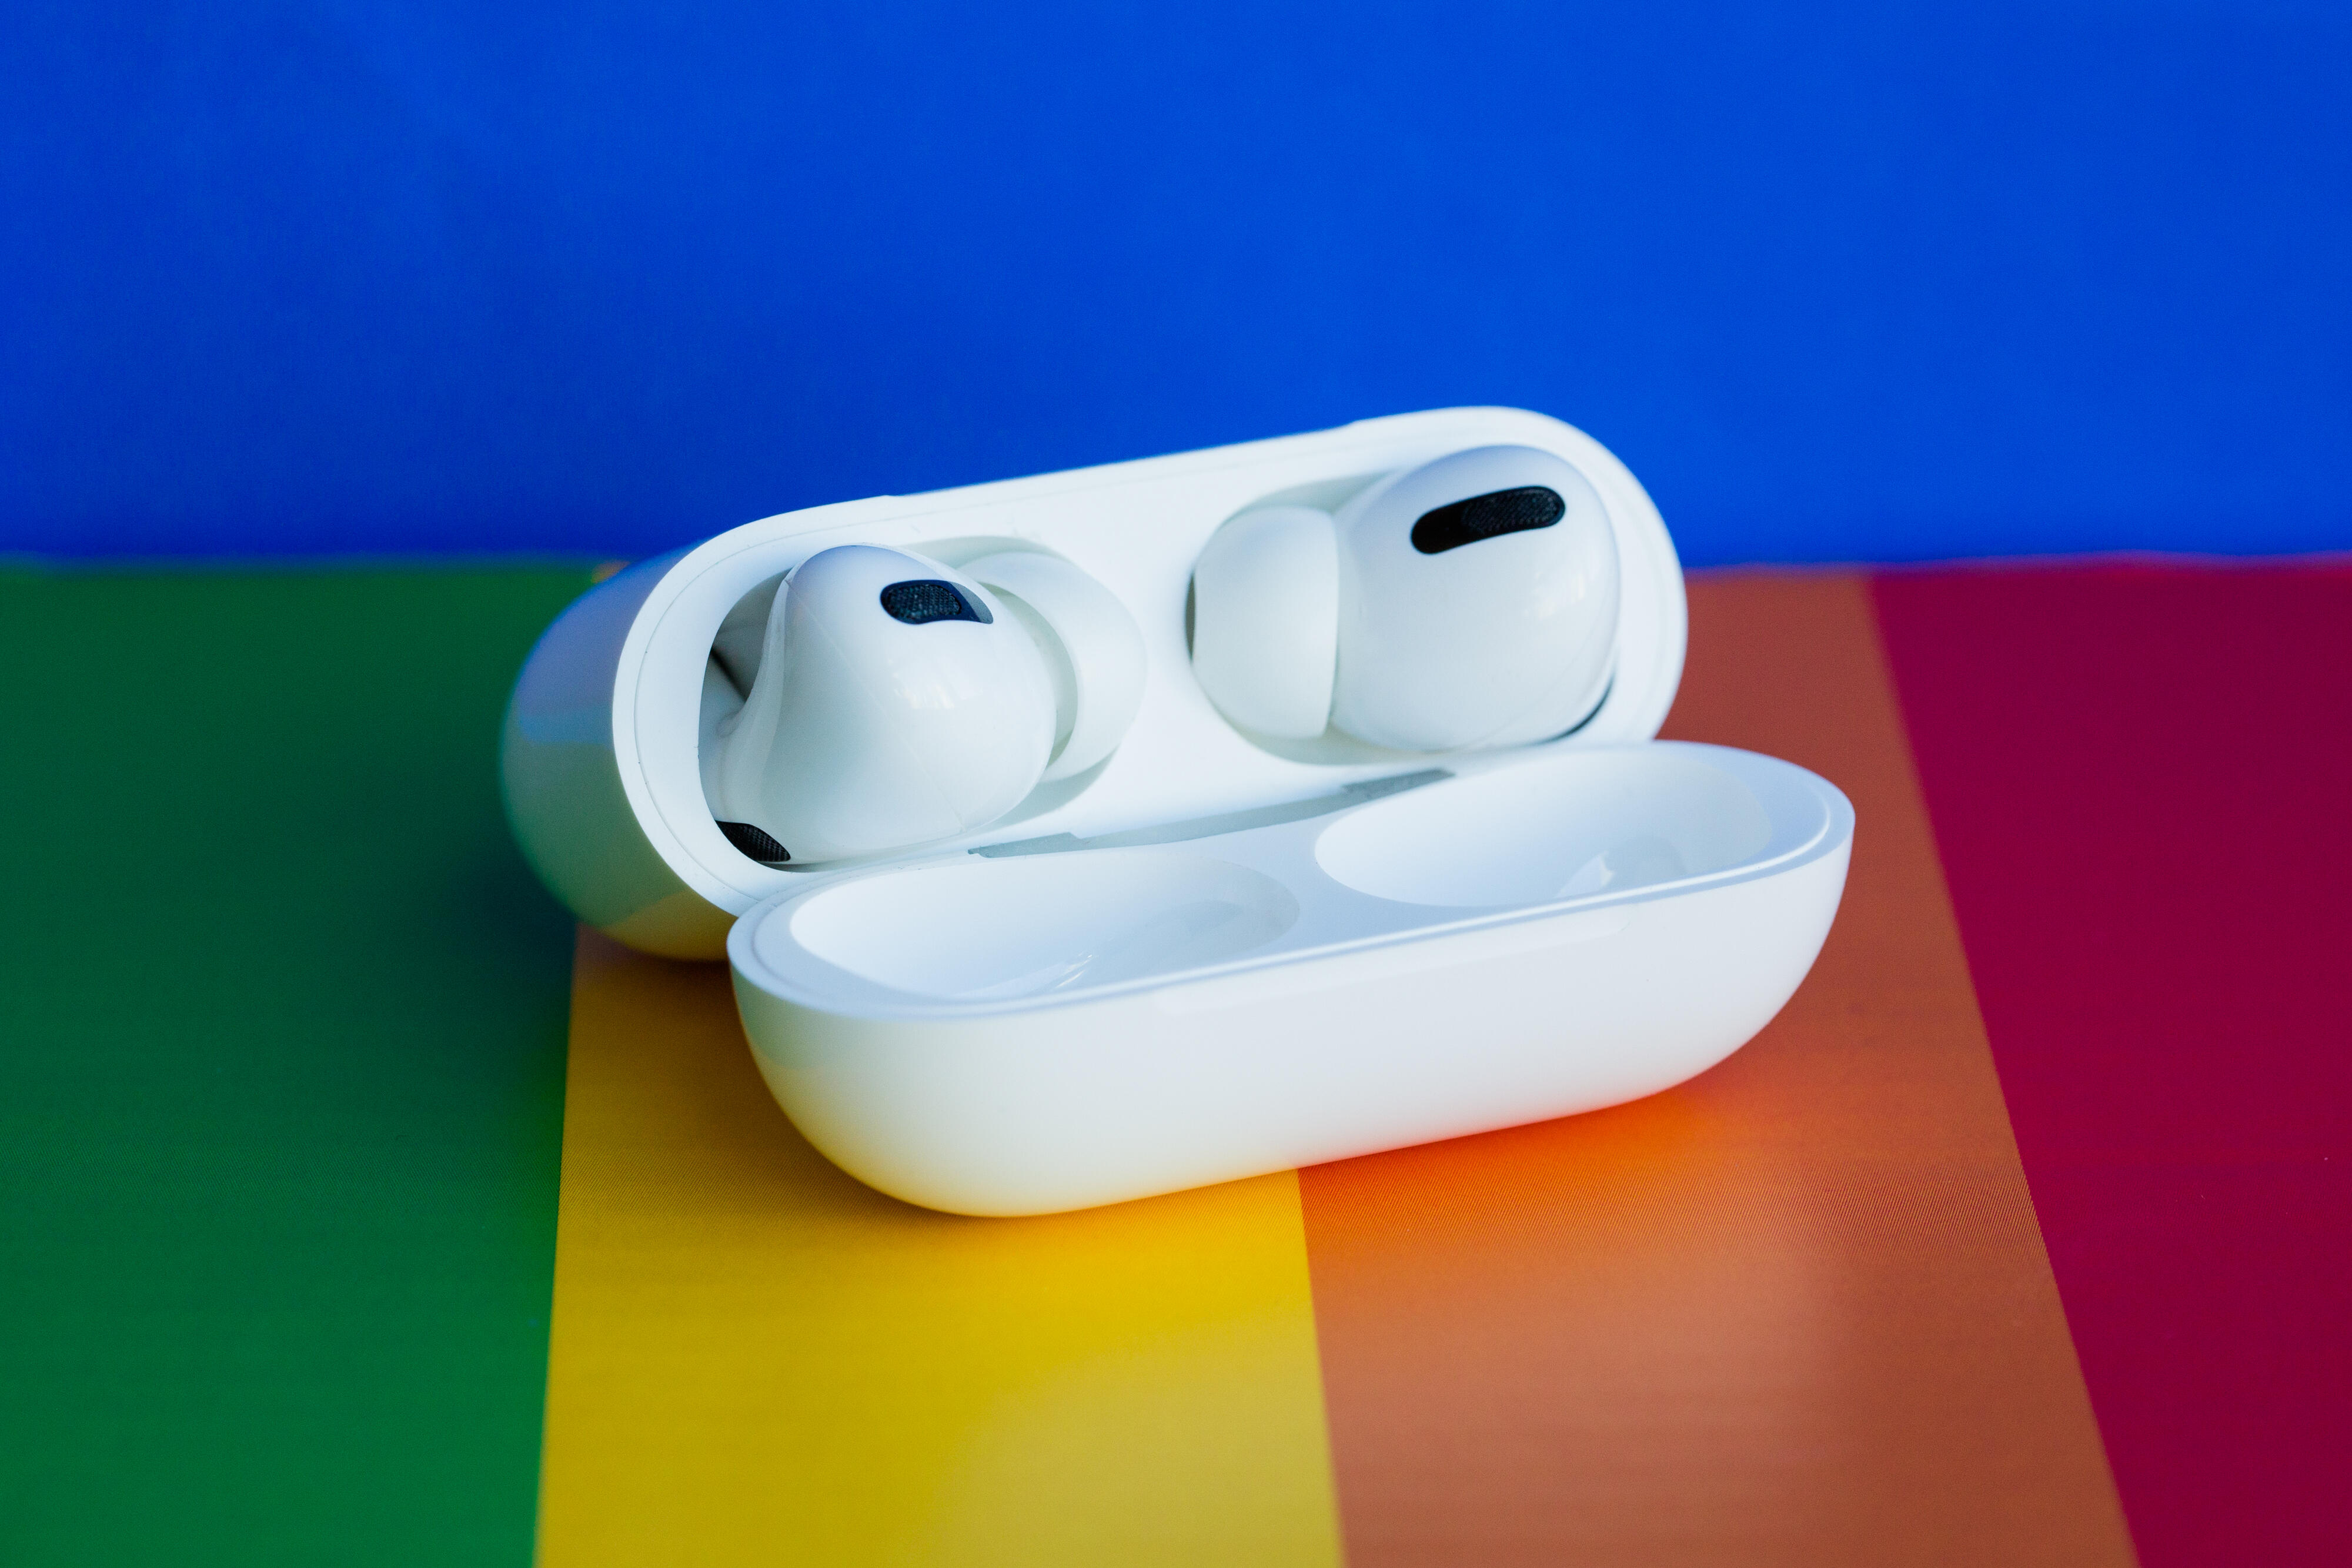 AirPods separation anxiety? Apple has new ways to hunt down lost earbuds in iOS  15 - CNET